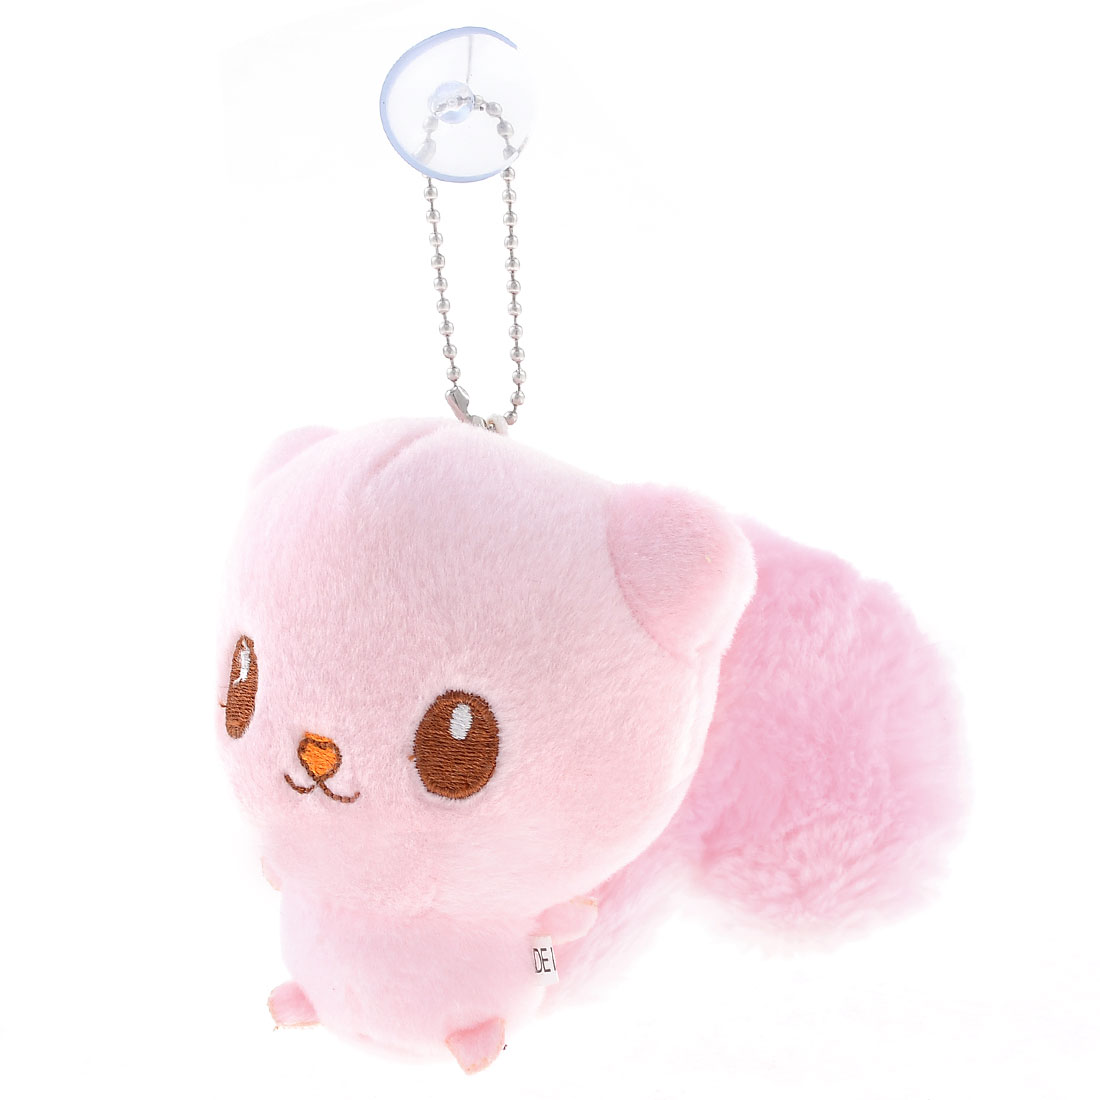 Light Pink Stuffed Plush Squirrel Toy Suction Cup Ornament